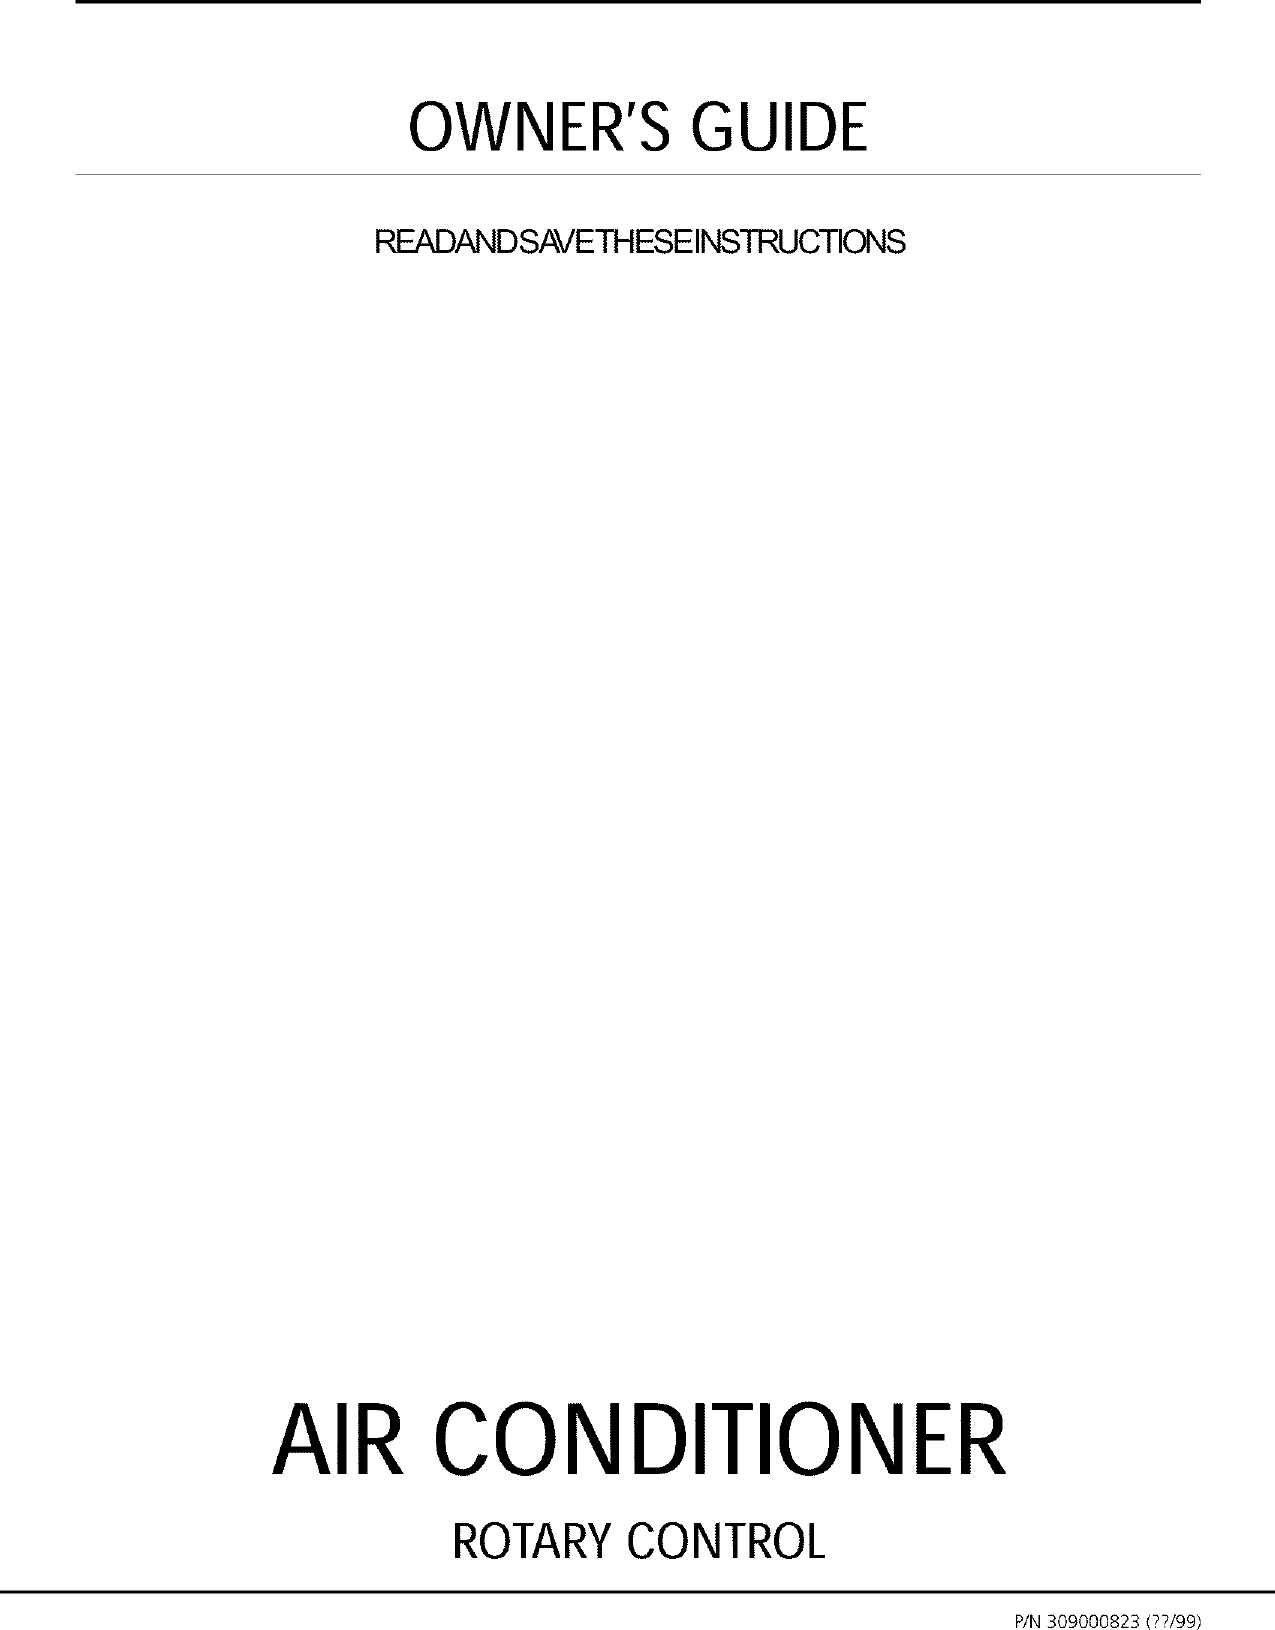 Gibson GAS154J1A1 User Manual AIR CONDITIONER Manuals And Guides L0111061